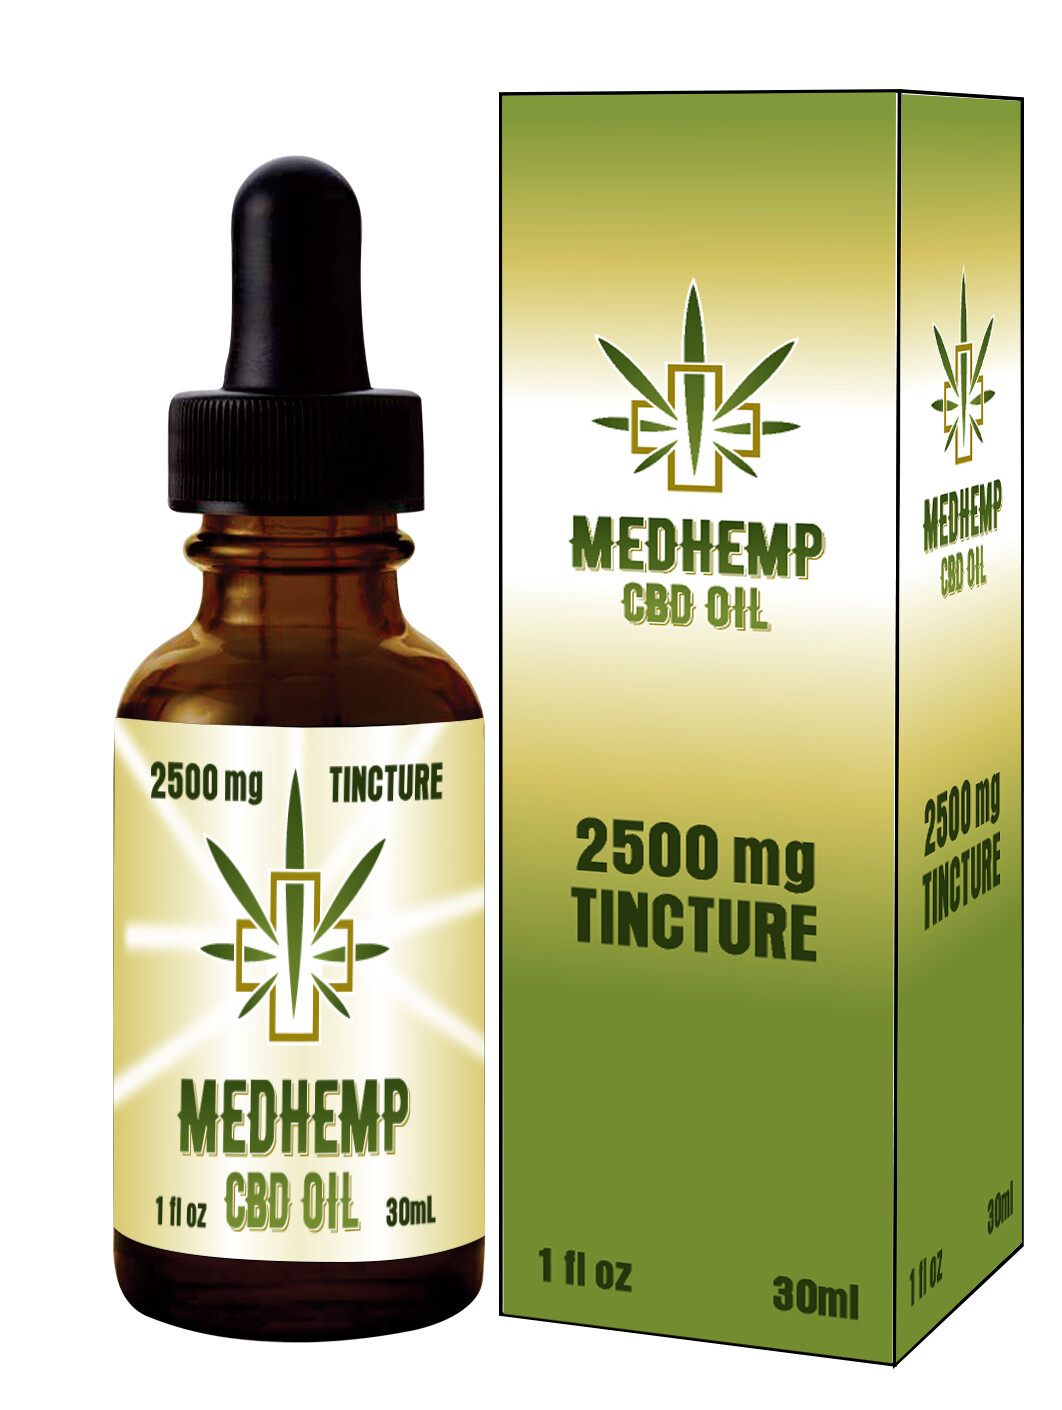 2500 MG CBD OIL BUY TWO GET ONE FREE